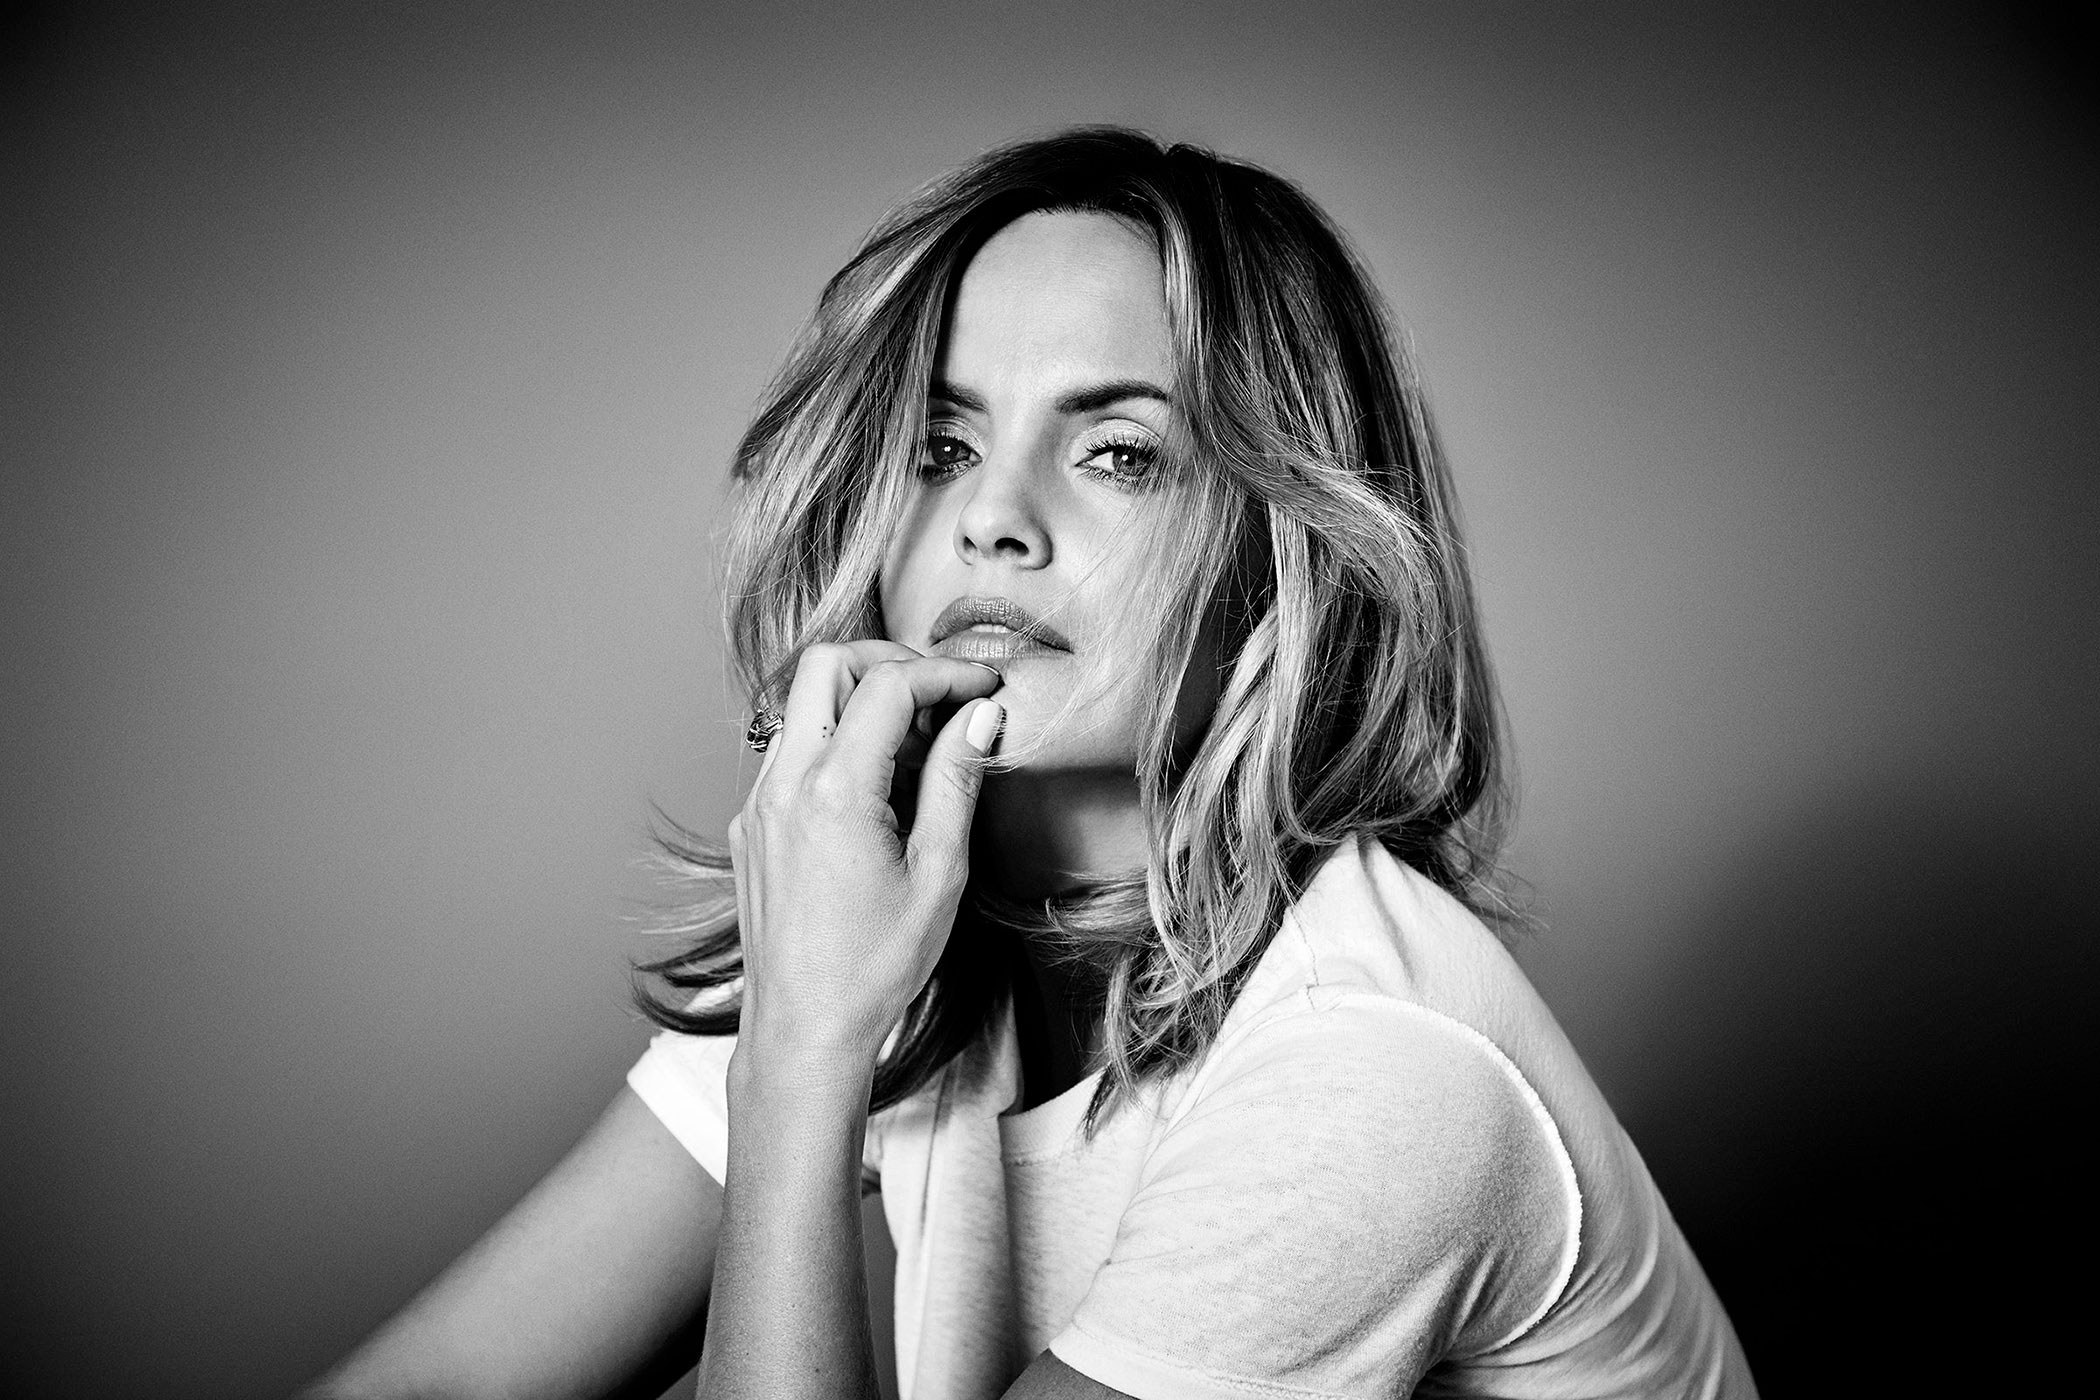 MENA SUVARI by DAVID NEEDLEMAN 2018